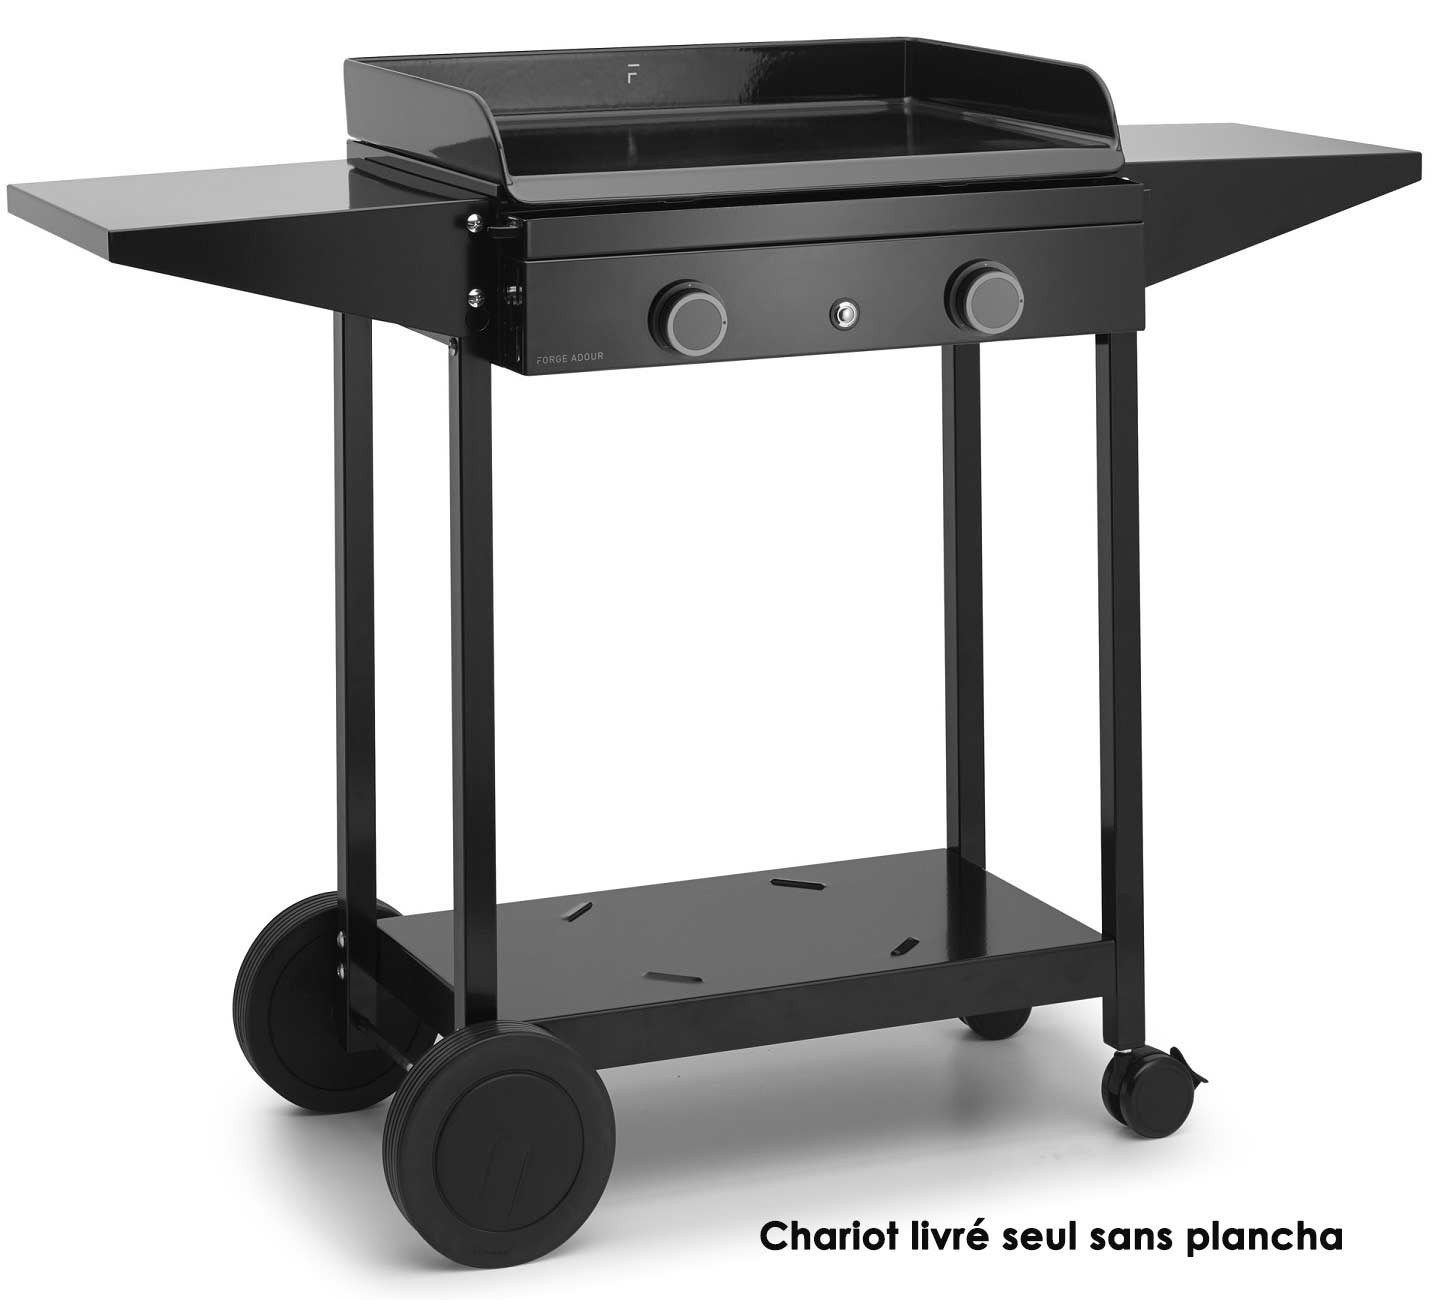 FORGE ADOUR - CH OA 60